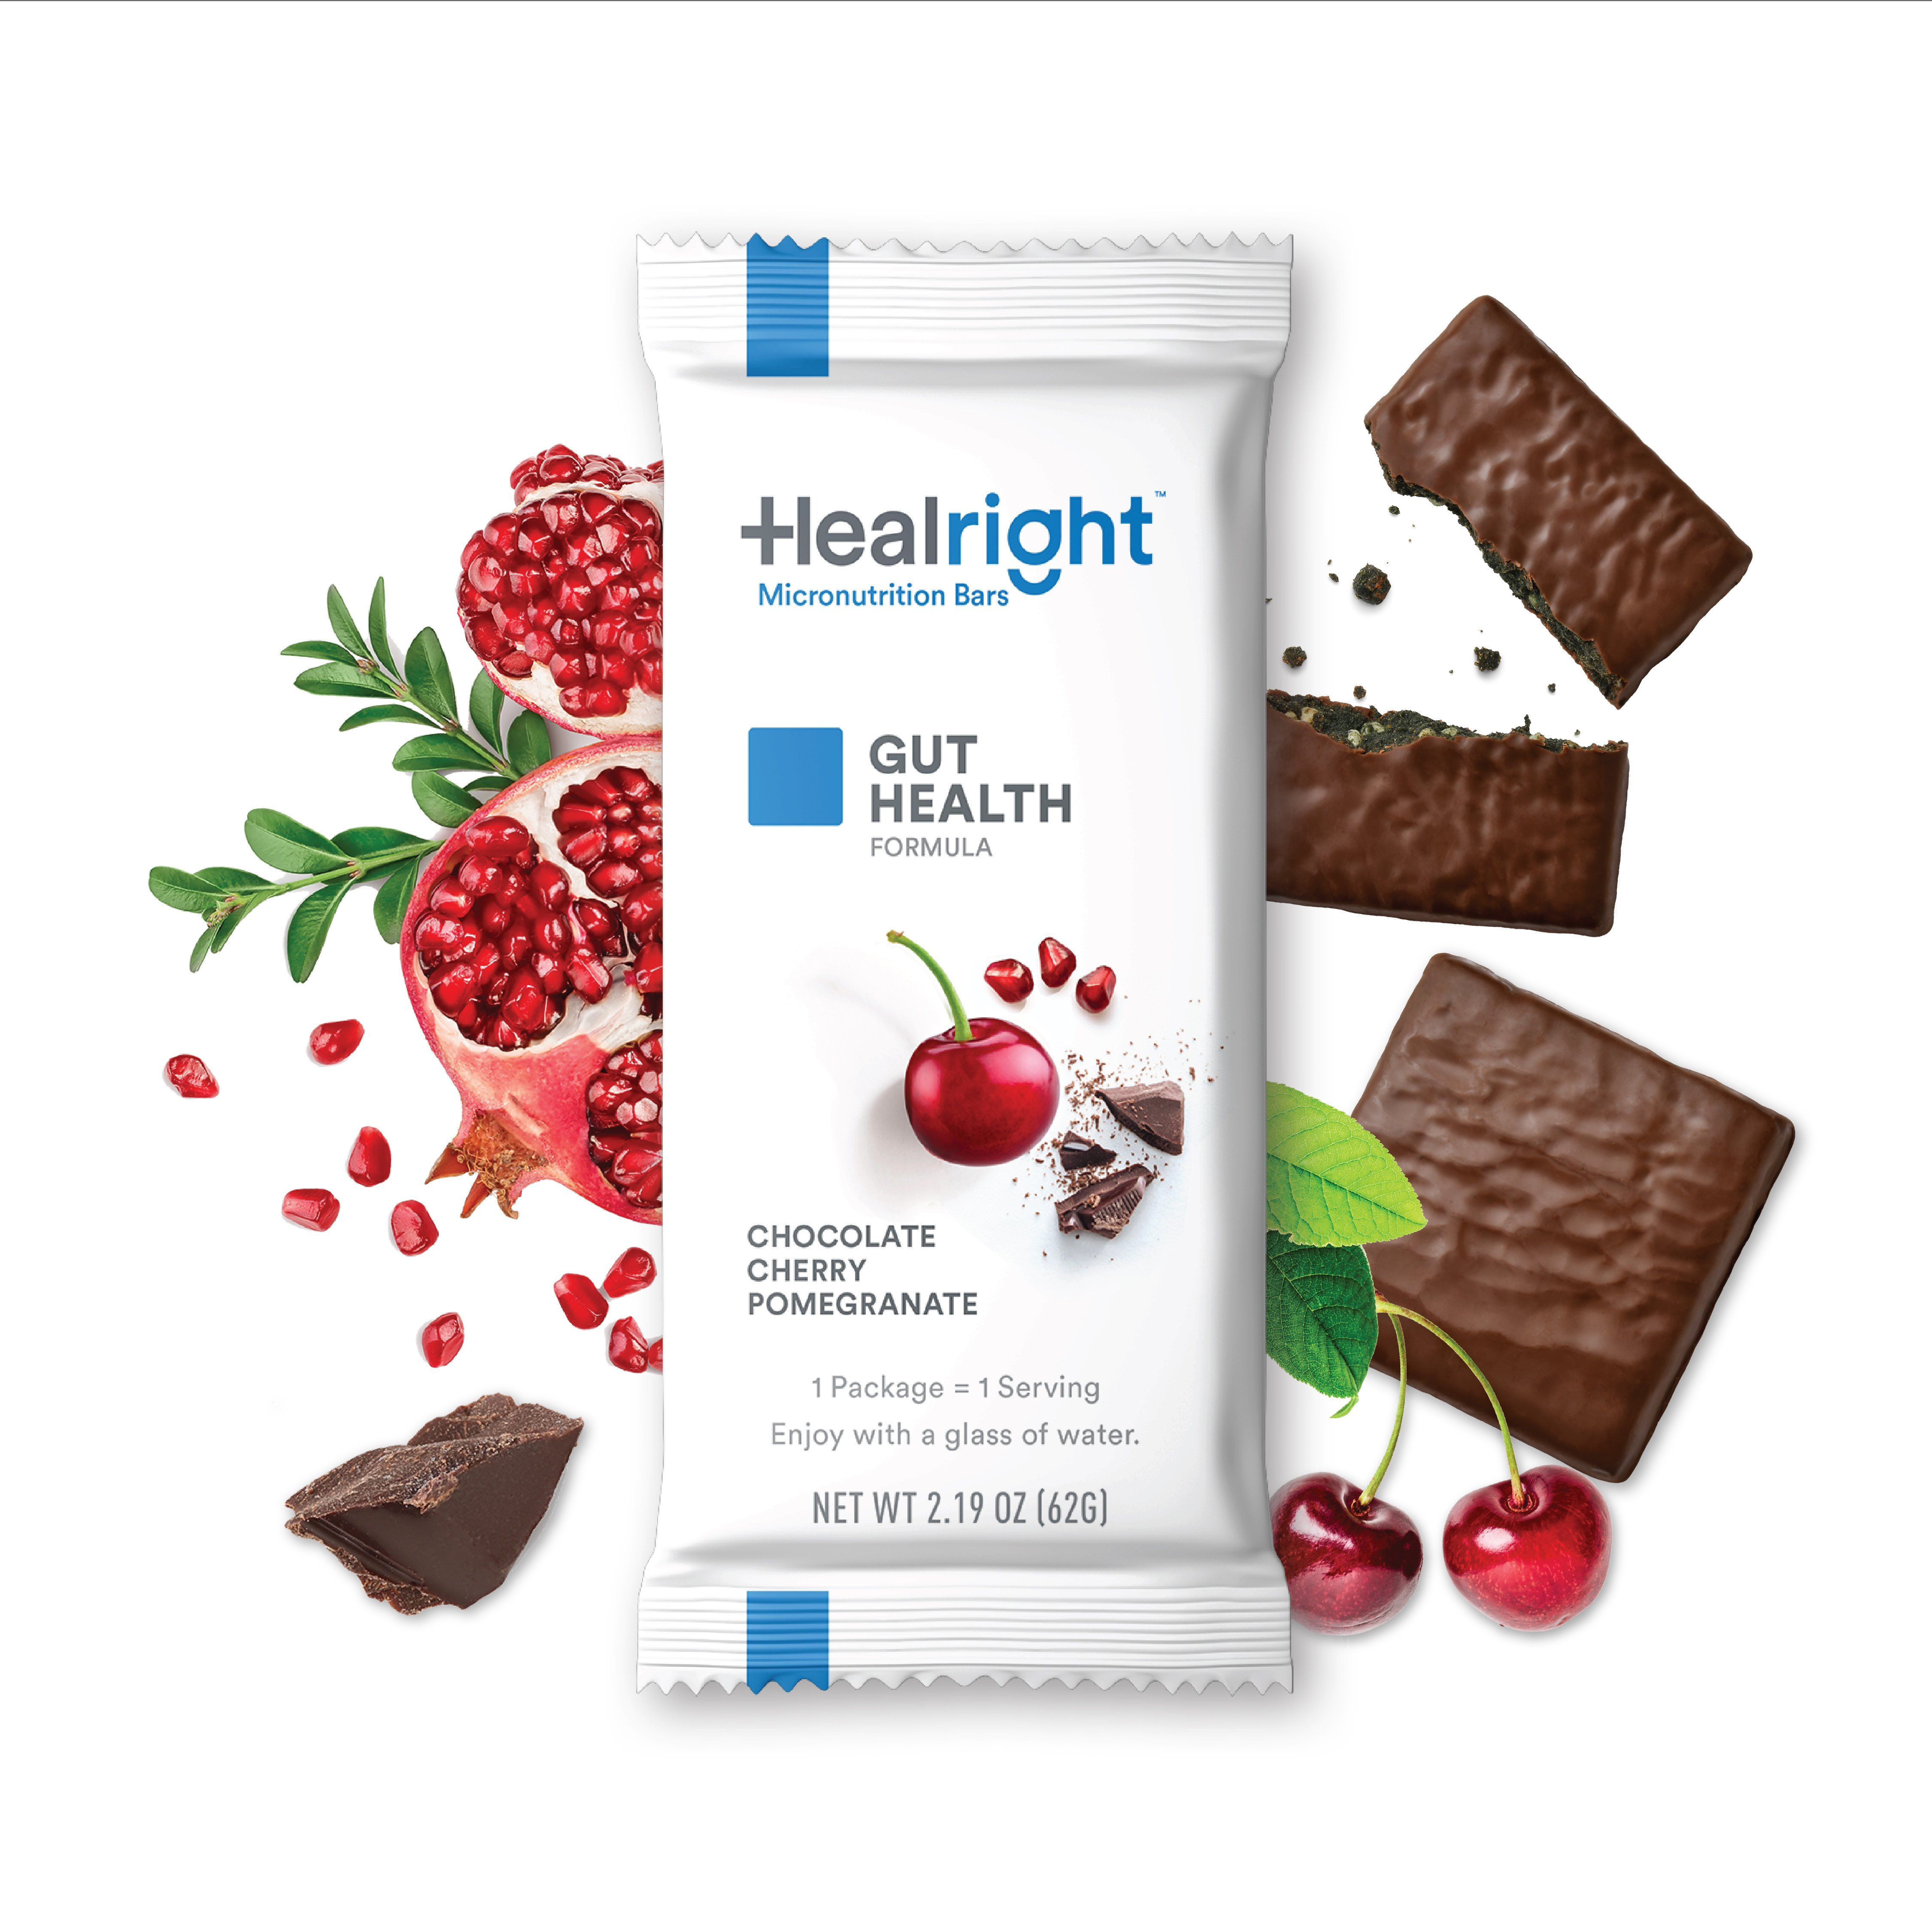 Healright Try with Chocolate Cherry Pomegranate flavor